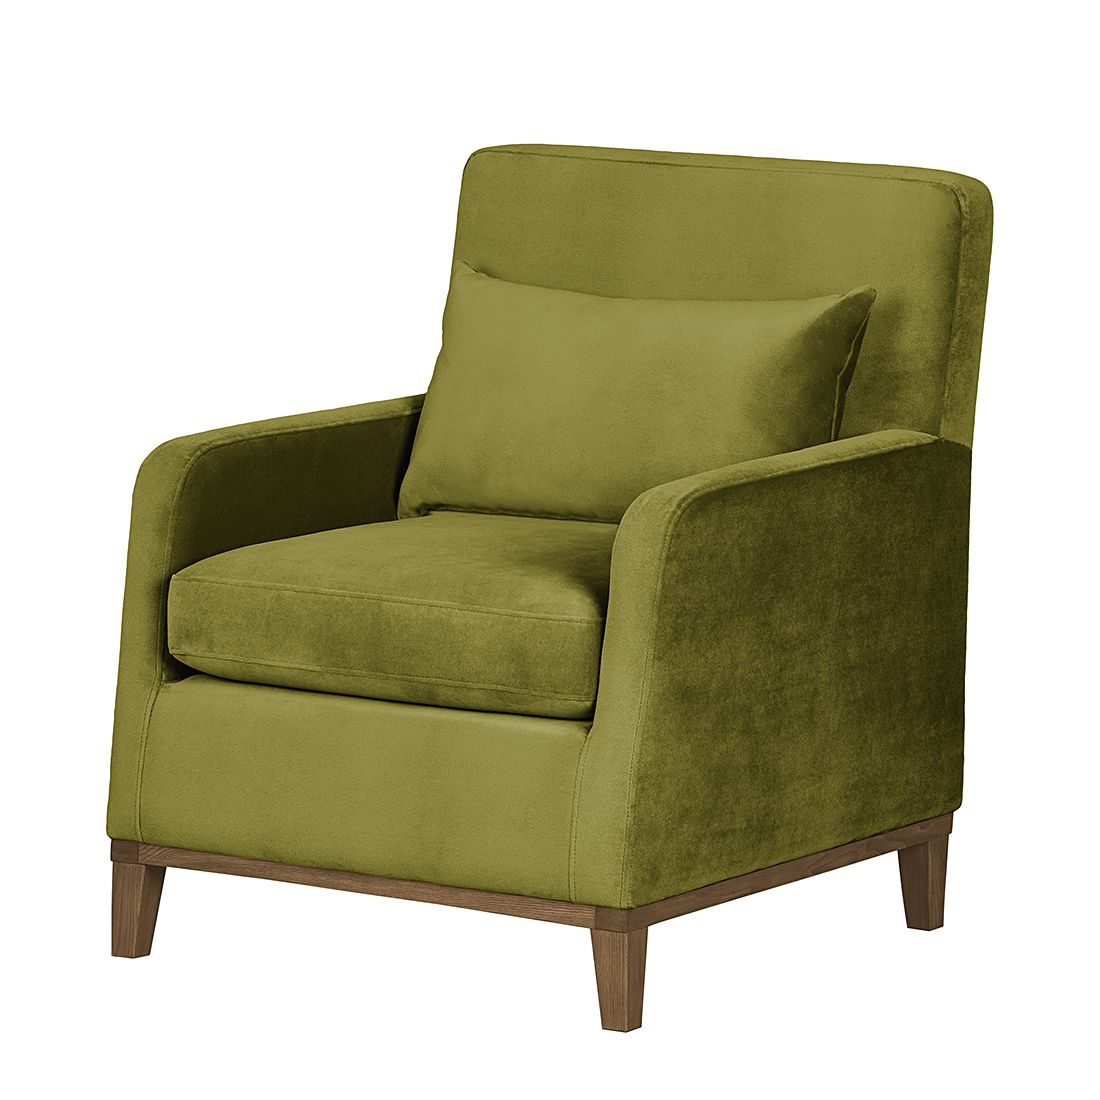 Fauteuil Blomma - Velours - Vert olive - Chêne, Jack and Alice